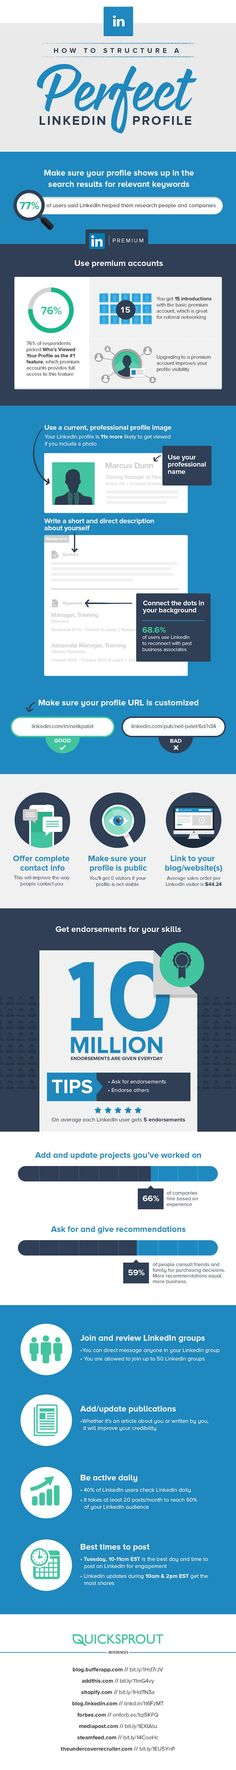 9 Tips for Optimizing Your LinkedIn Profile